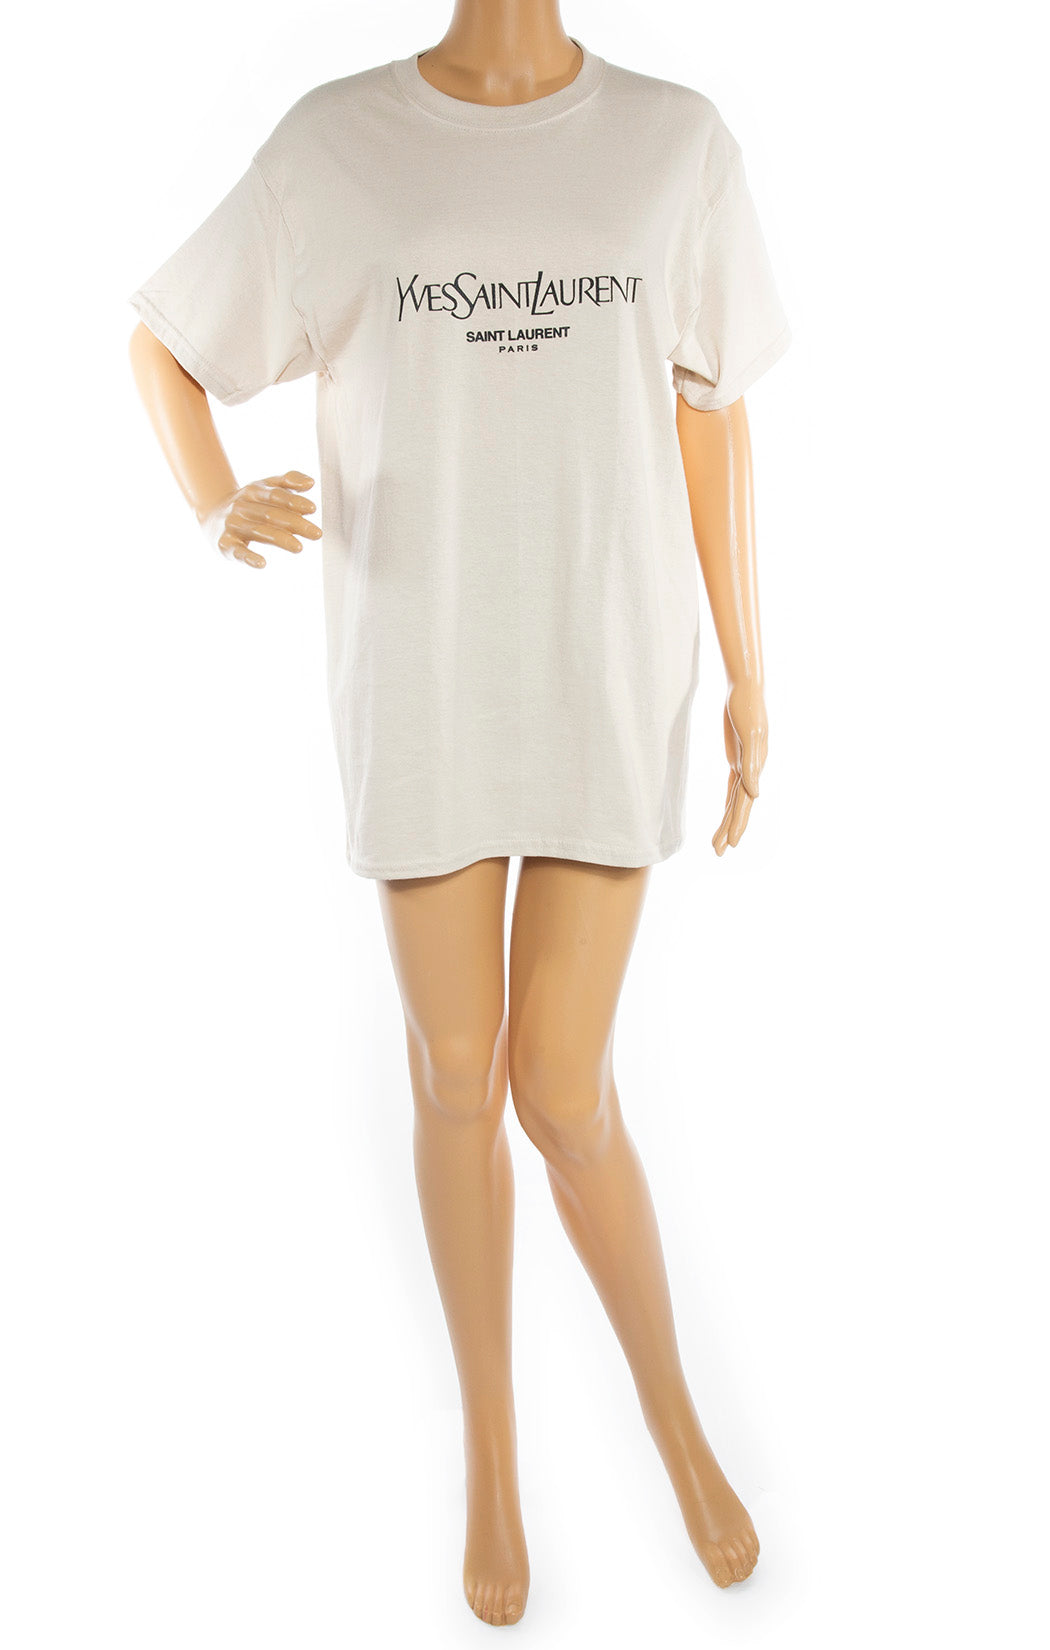 Front view of YVES SAINT LAURENT  T-Shirt Size: No tags, fits like medium